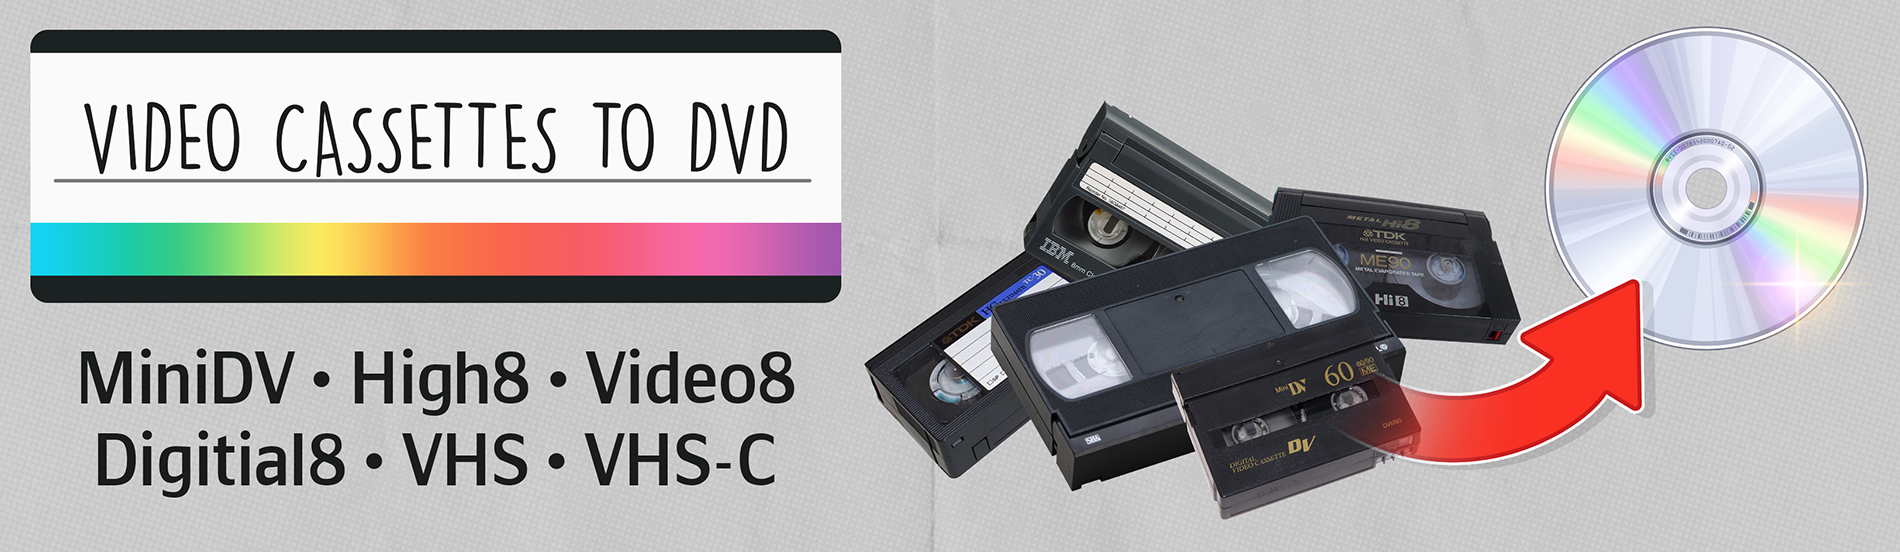 Video Cassette to DVD